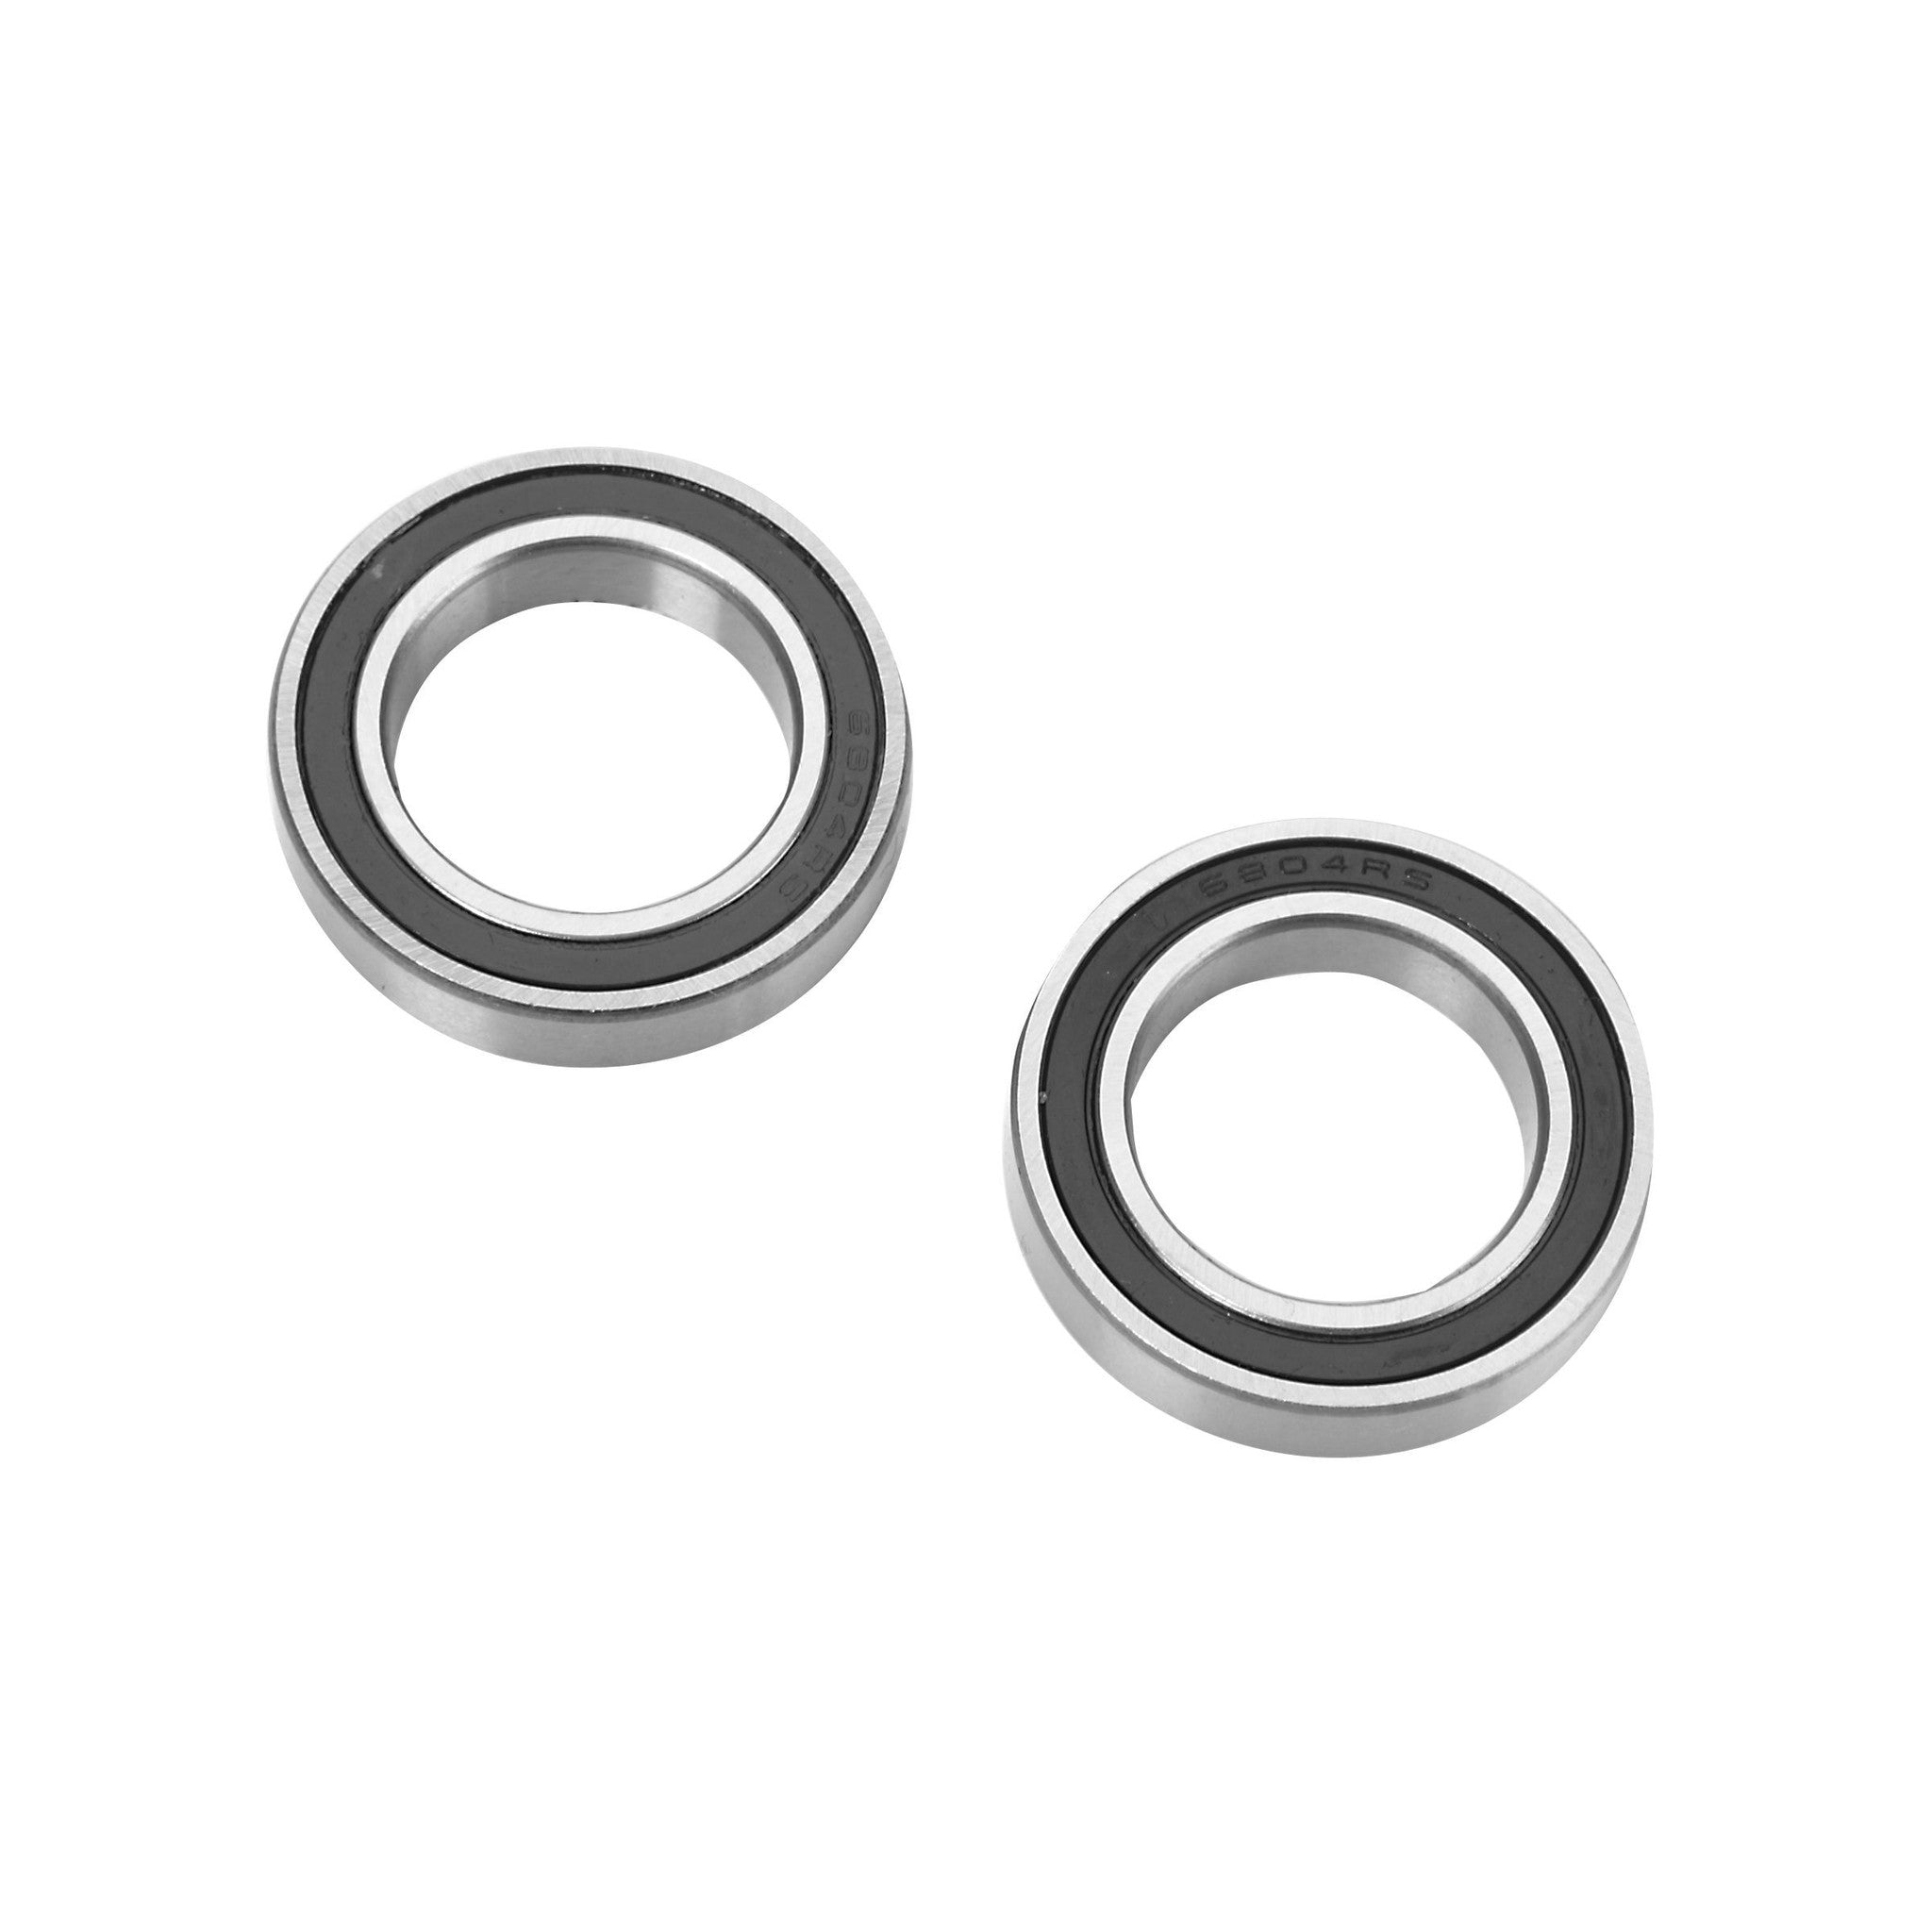 M70-1680/840 Replacement Bearing Assembly Handle Kit - 8100127, , Magswitch,Mag-Tools - Mag-Tools